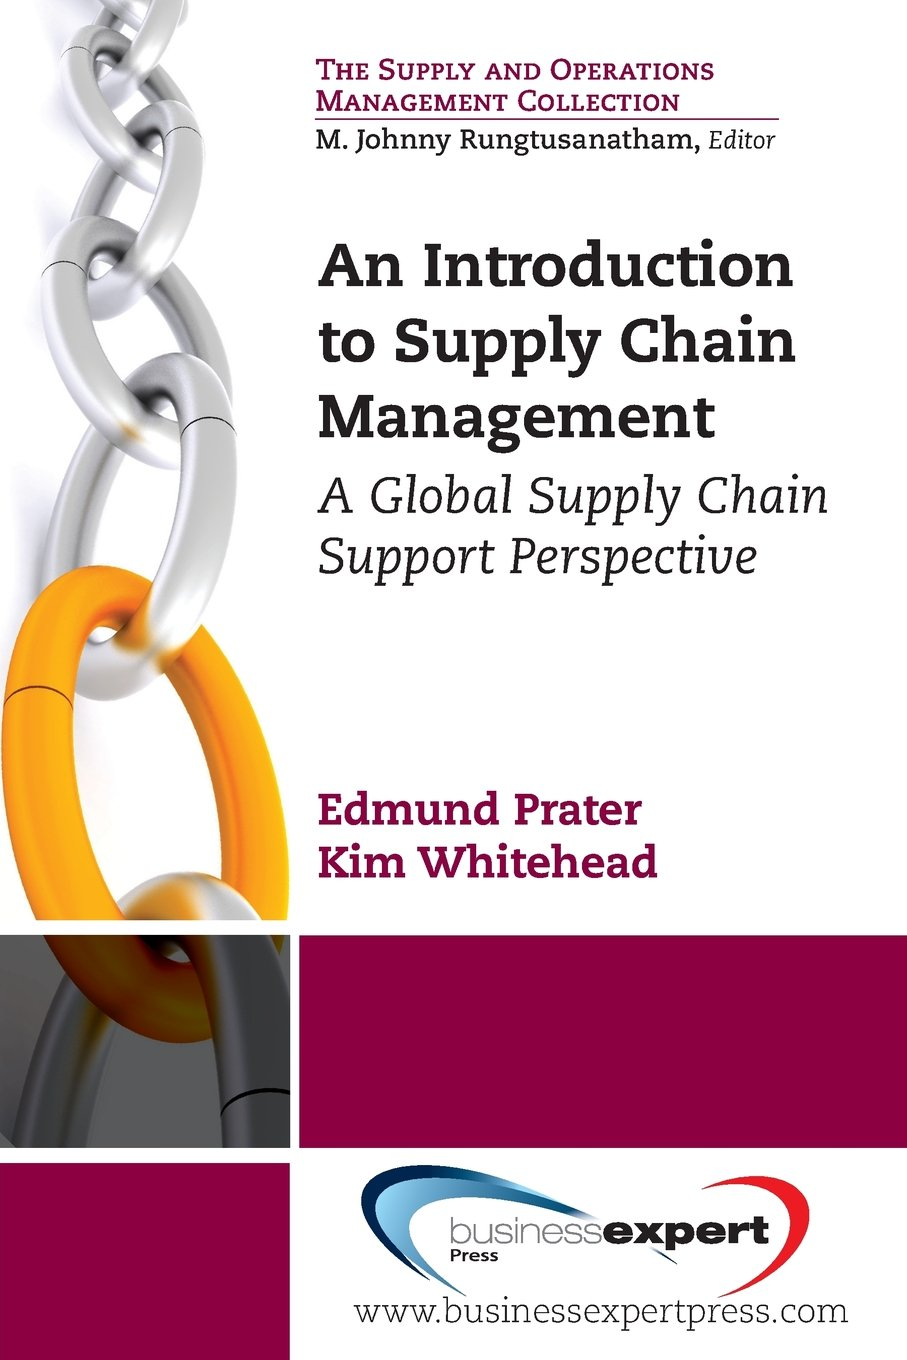 An introduction to supply chain management a global supply chain an introduction to supply chain management a global supply chain support perspective supply and operations management collection edmund prater fandeluxe Images